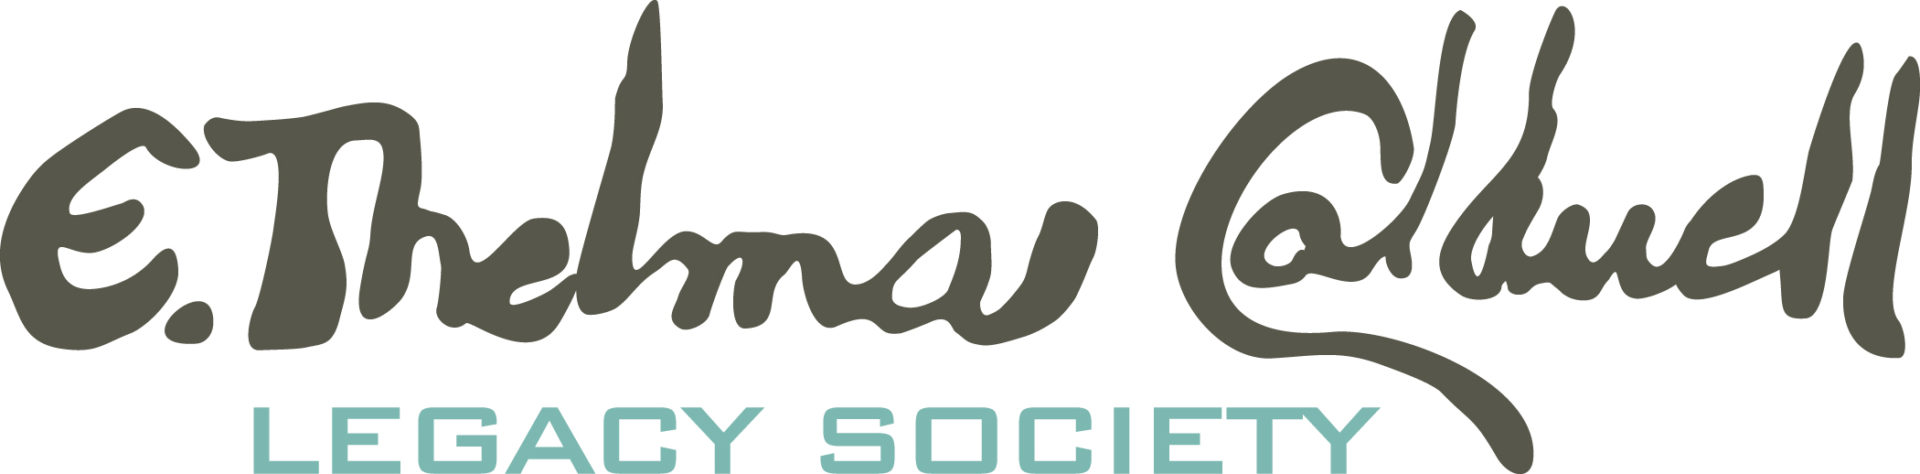 E. Thelma Caldwell Legacy Society for planned giving